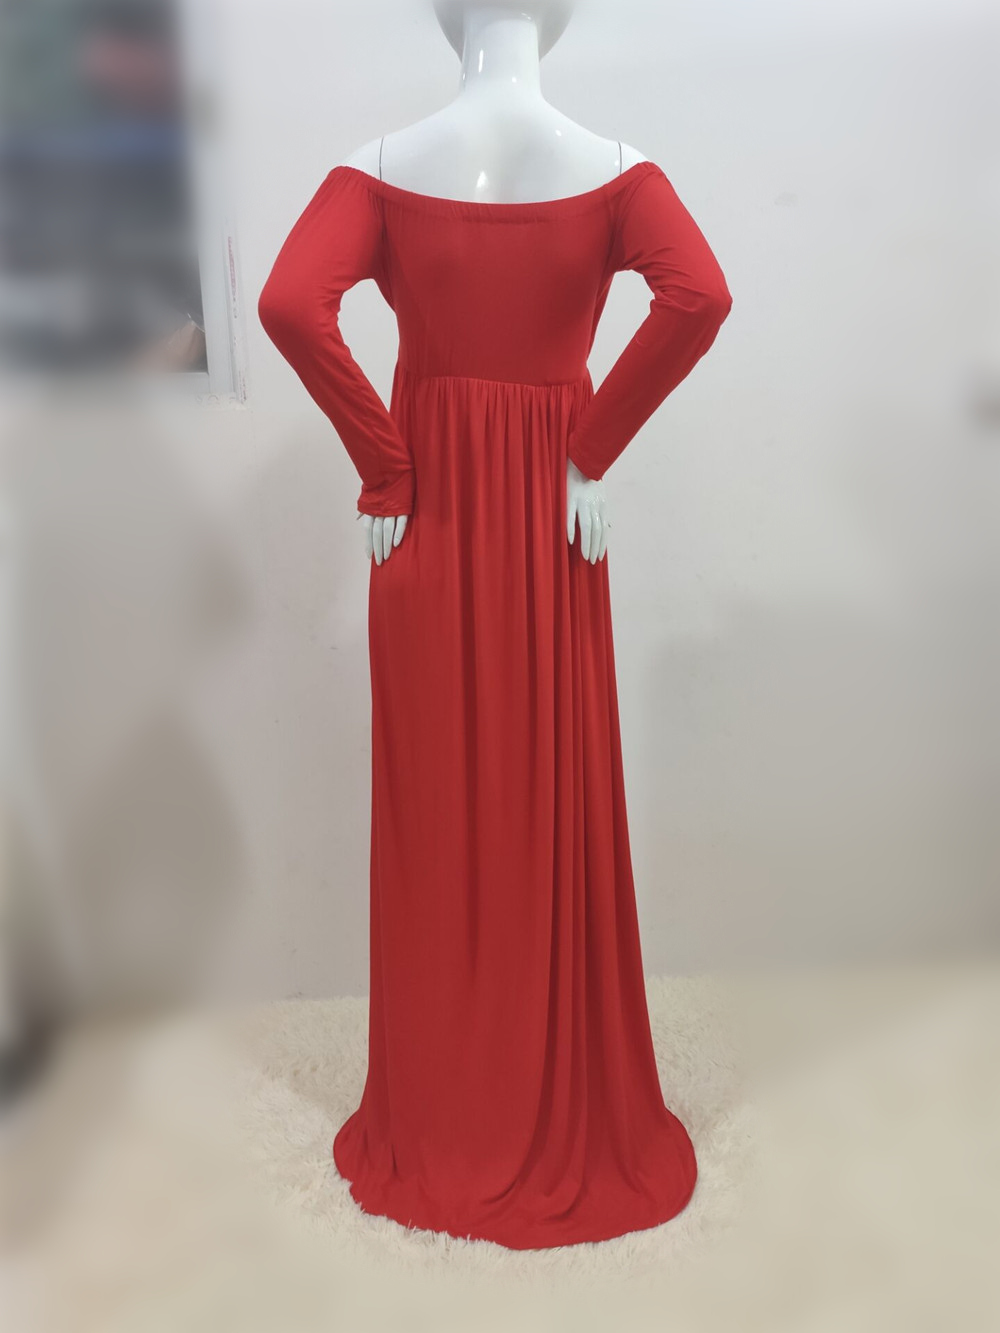 Long Shoulderless Maternity Photography Props Dresses Sexy Split Front Pregnancy Dress Photo Shoot For Pregnant Women Maxi Gown (6)